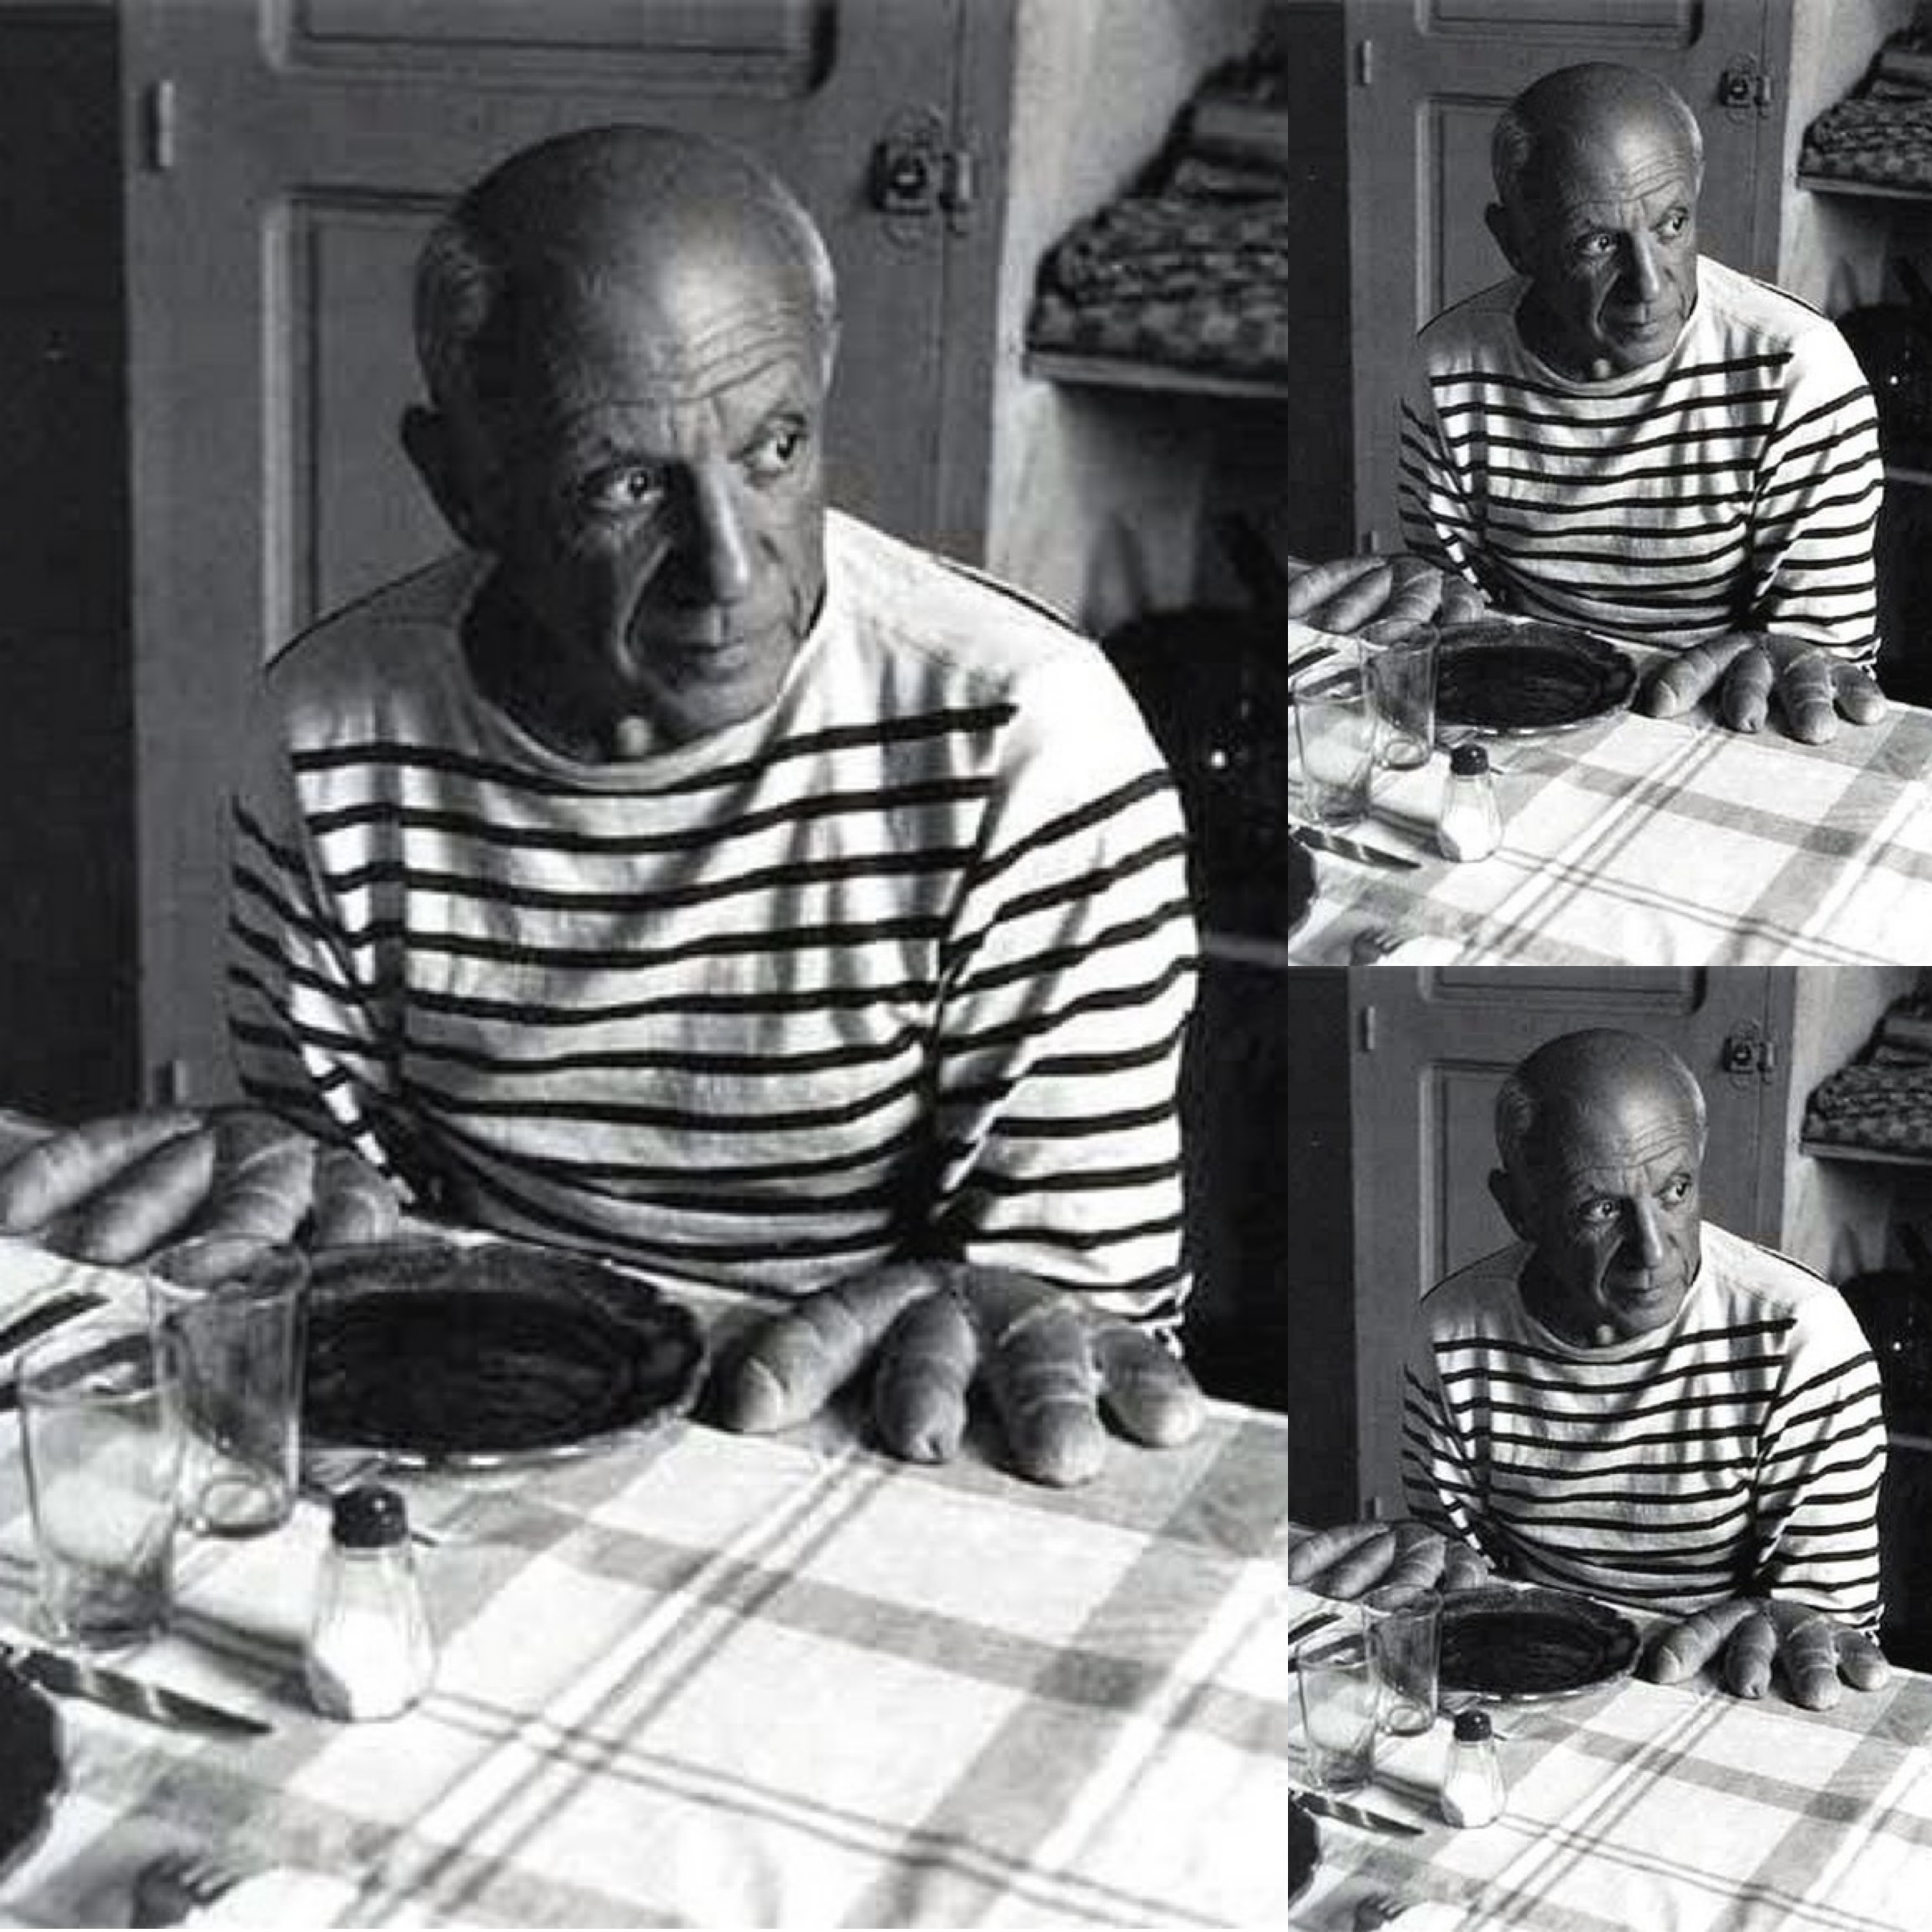 Pablo Picasso shows that stripes work at all ages